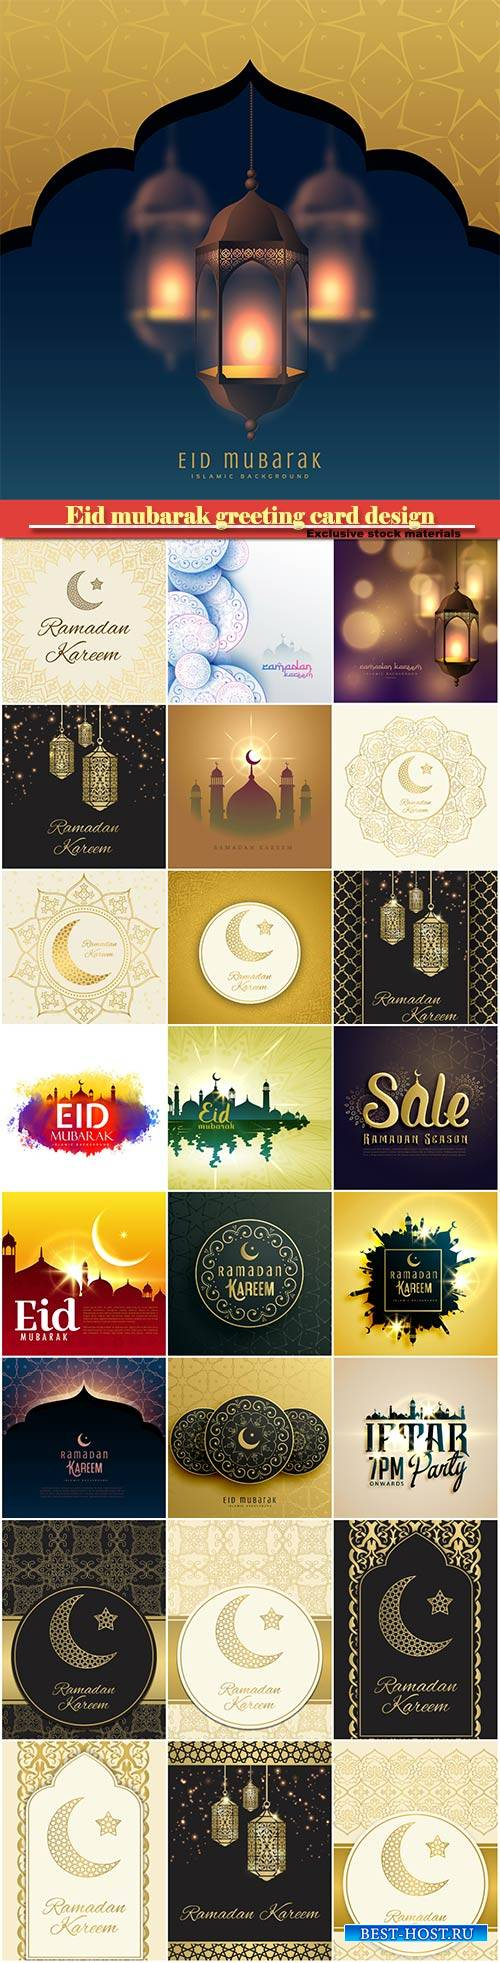 Eid mubarak greeting card design in islamic decoration, ramadan kareem vect ...